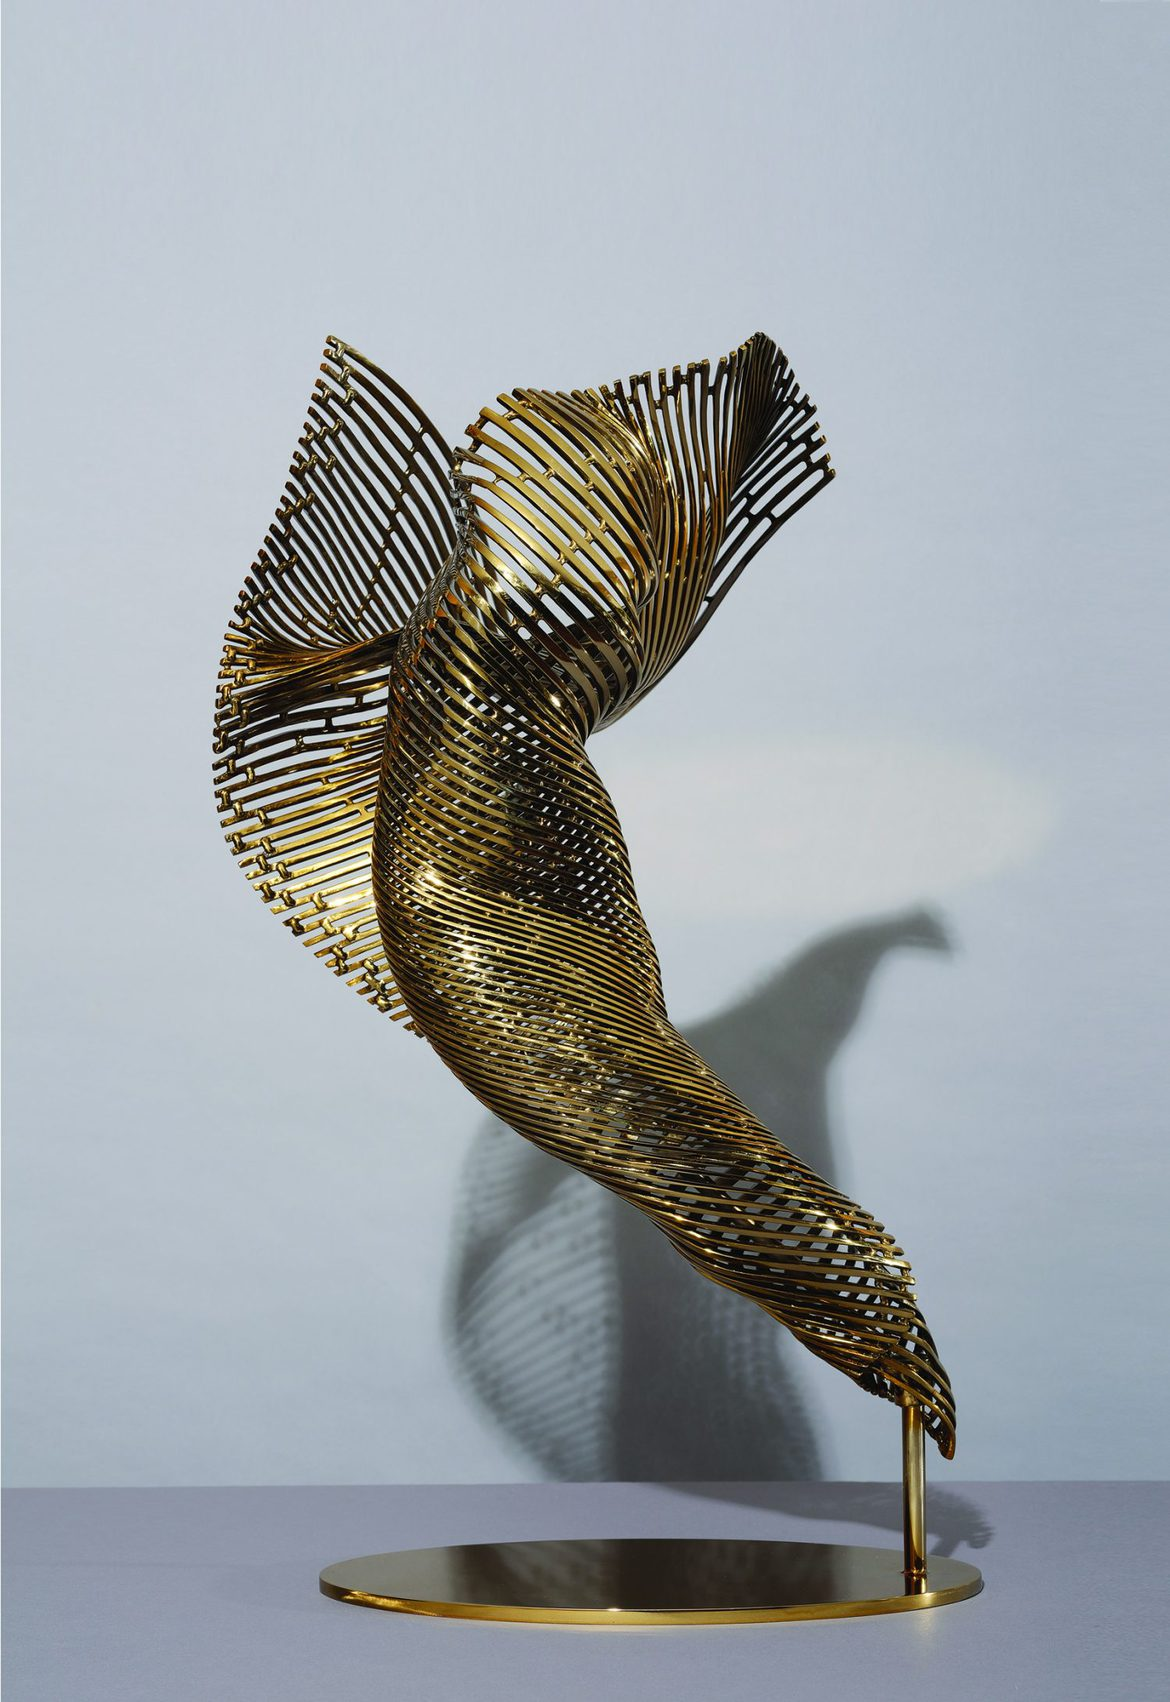 'I Am-Dancer', stainless steel, gold polychrome, 69 x 38 x 39 cm, edition 1 of 12 + 1AP